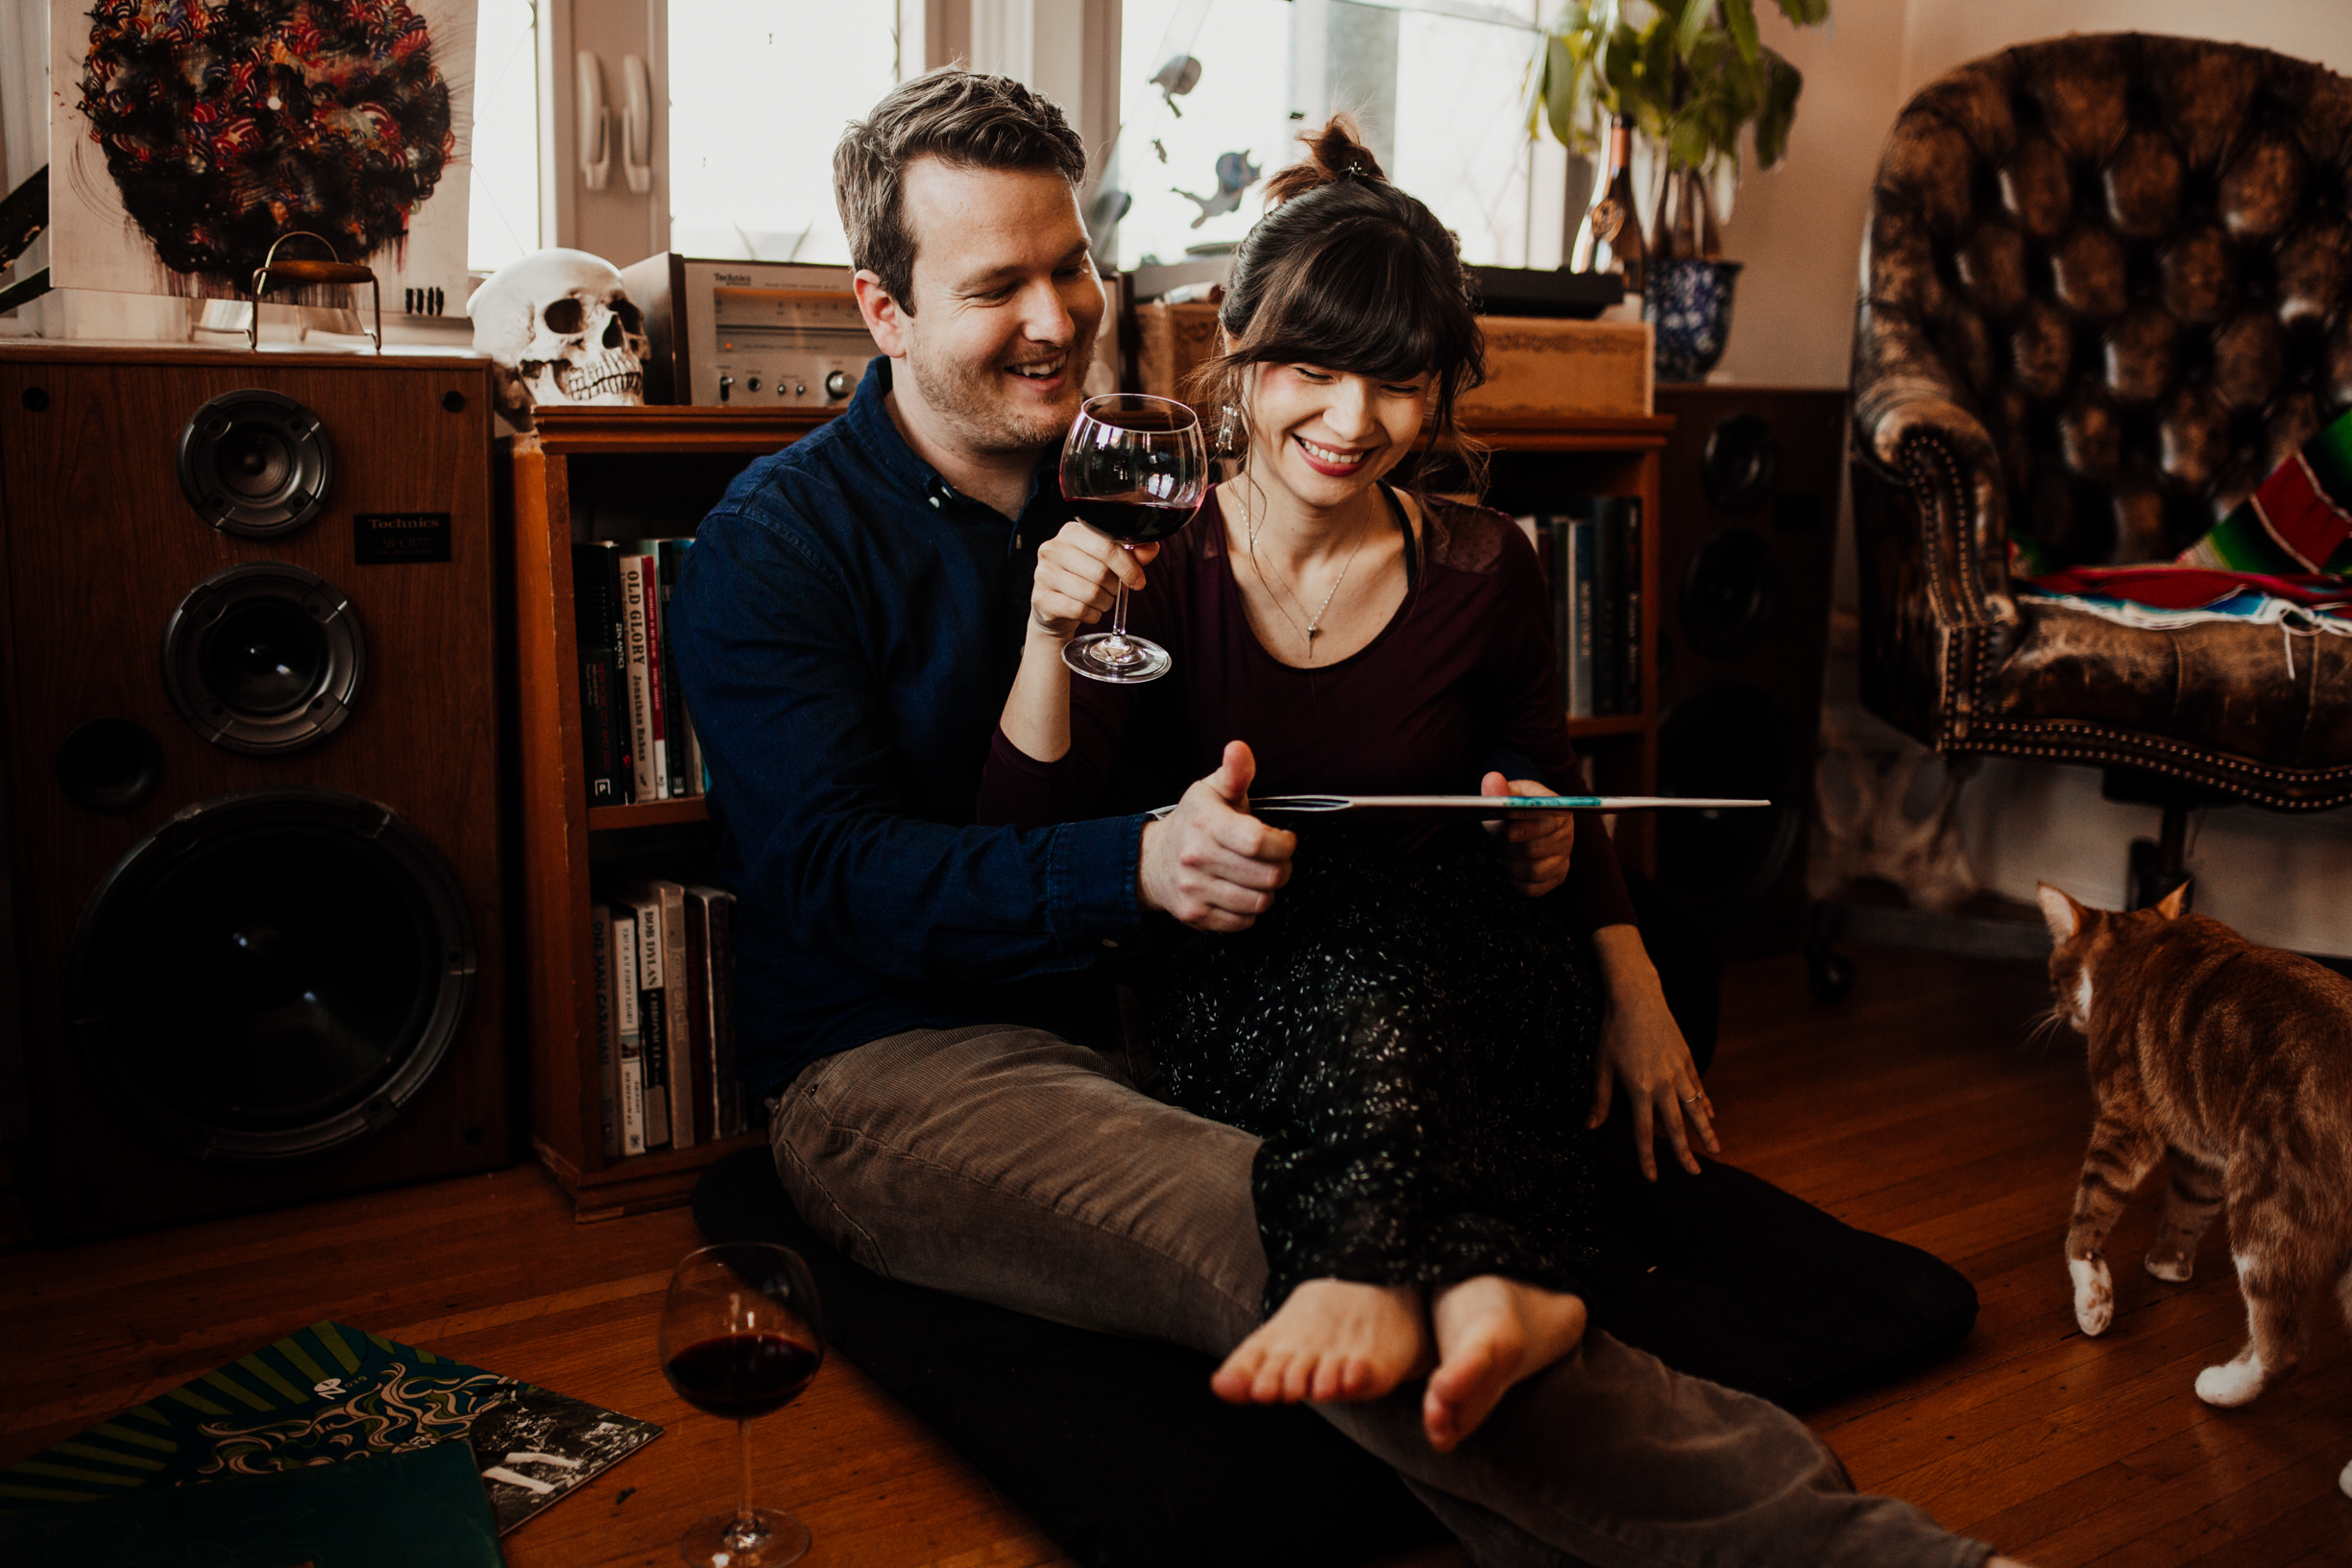 louisville-engagement-photographer-record-store-in-home-session-crystal-ludwick-photo (3 of 53).jpg